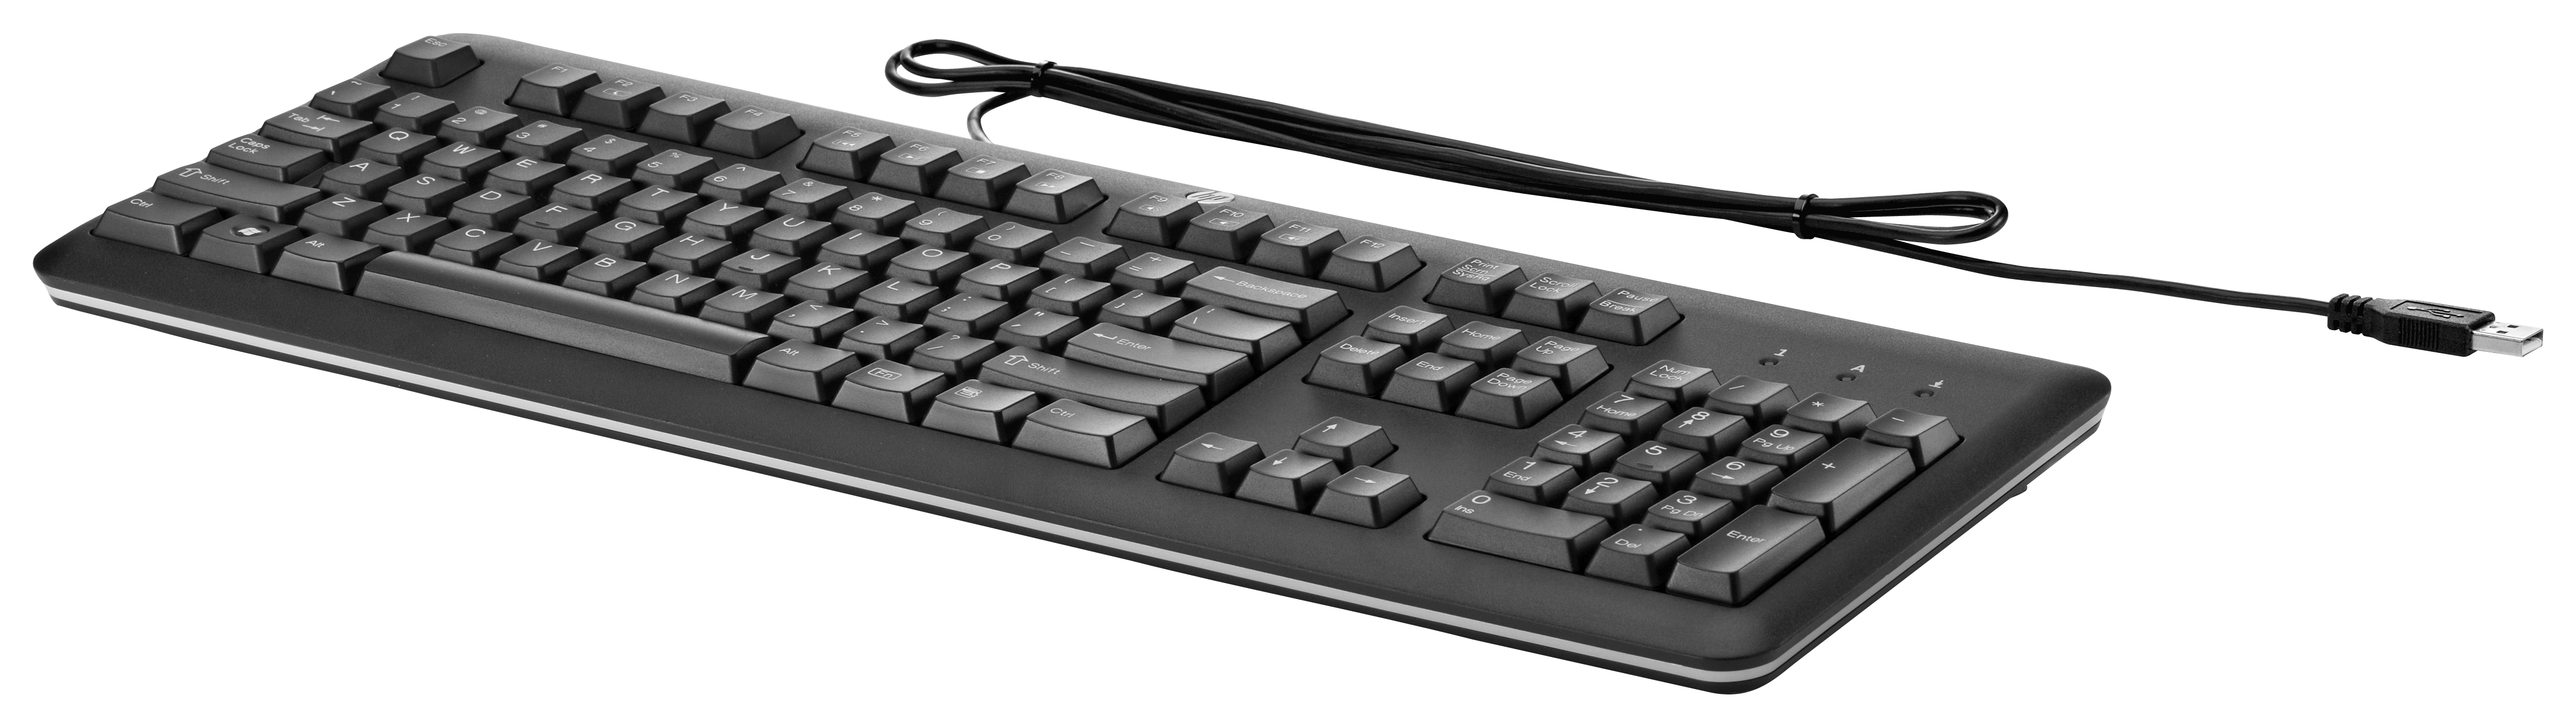 HP Keyboard Spanish 105K USB **New Retail** QY776AA#ABE - eet01